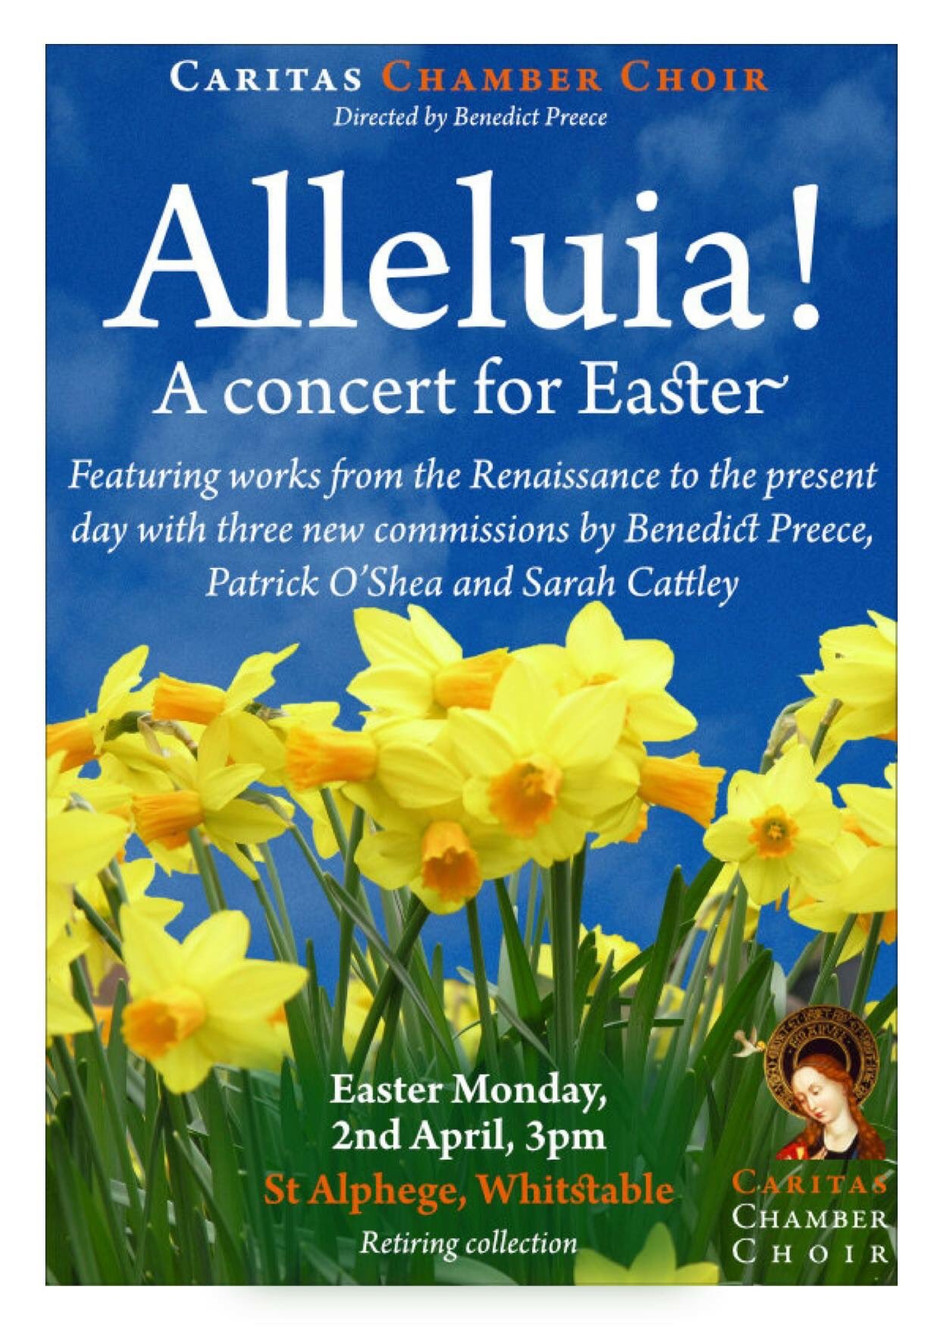 Performance By Caritas on Easter Monday